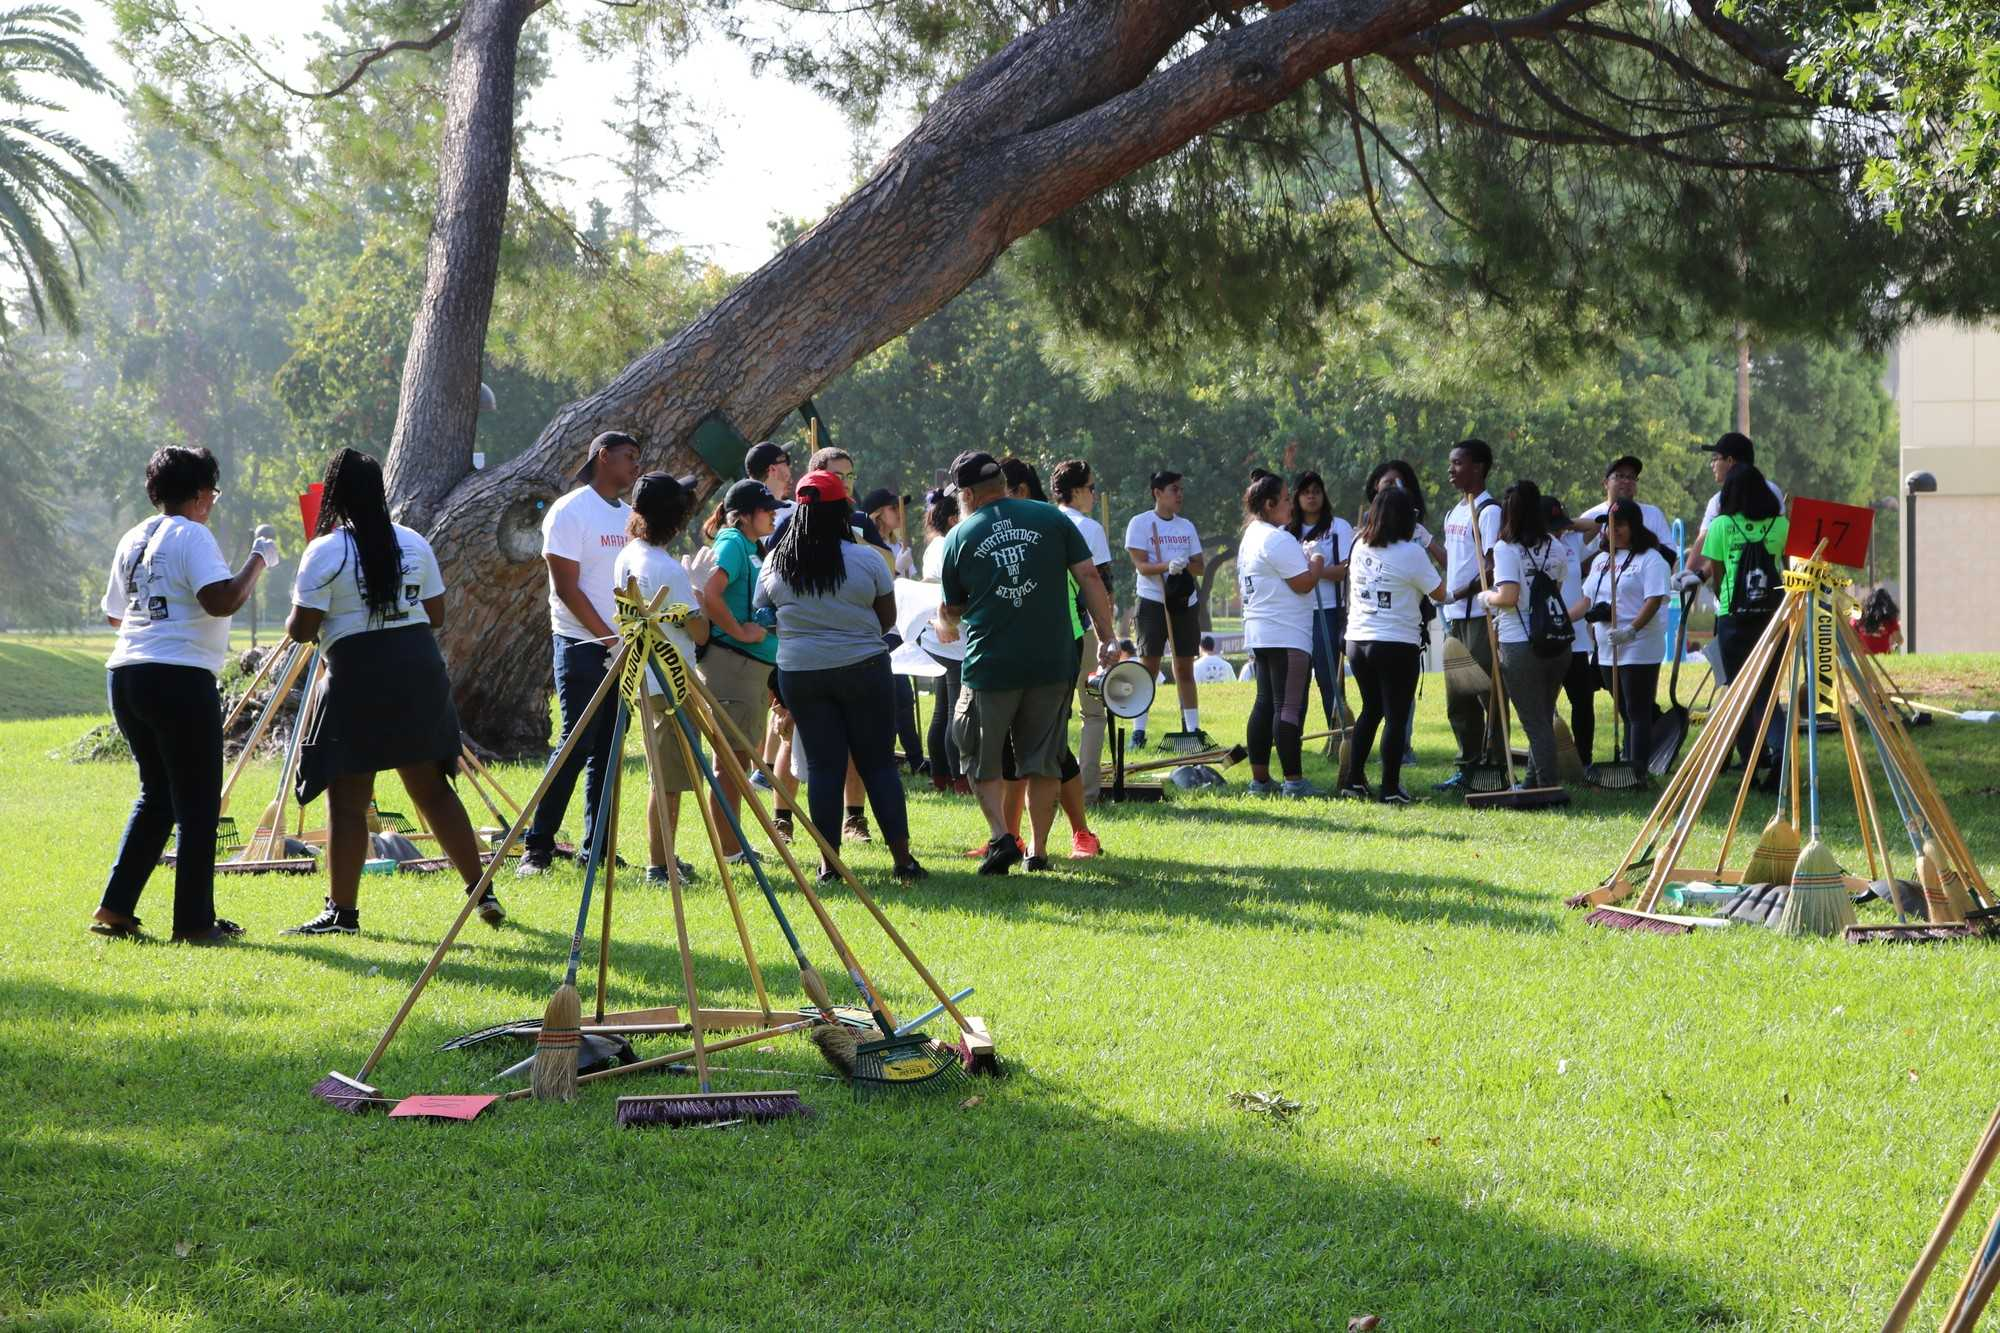 Students and volunteers gathered at Bayramian Lawn and met their groups Photo credit: Julio Mendez Ulloa